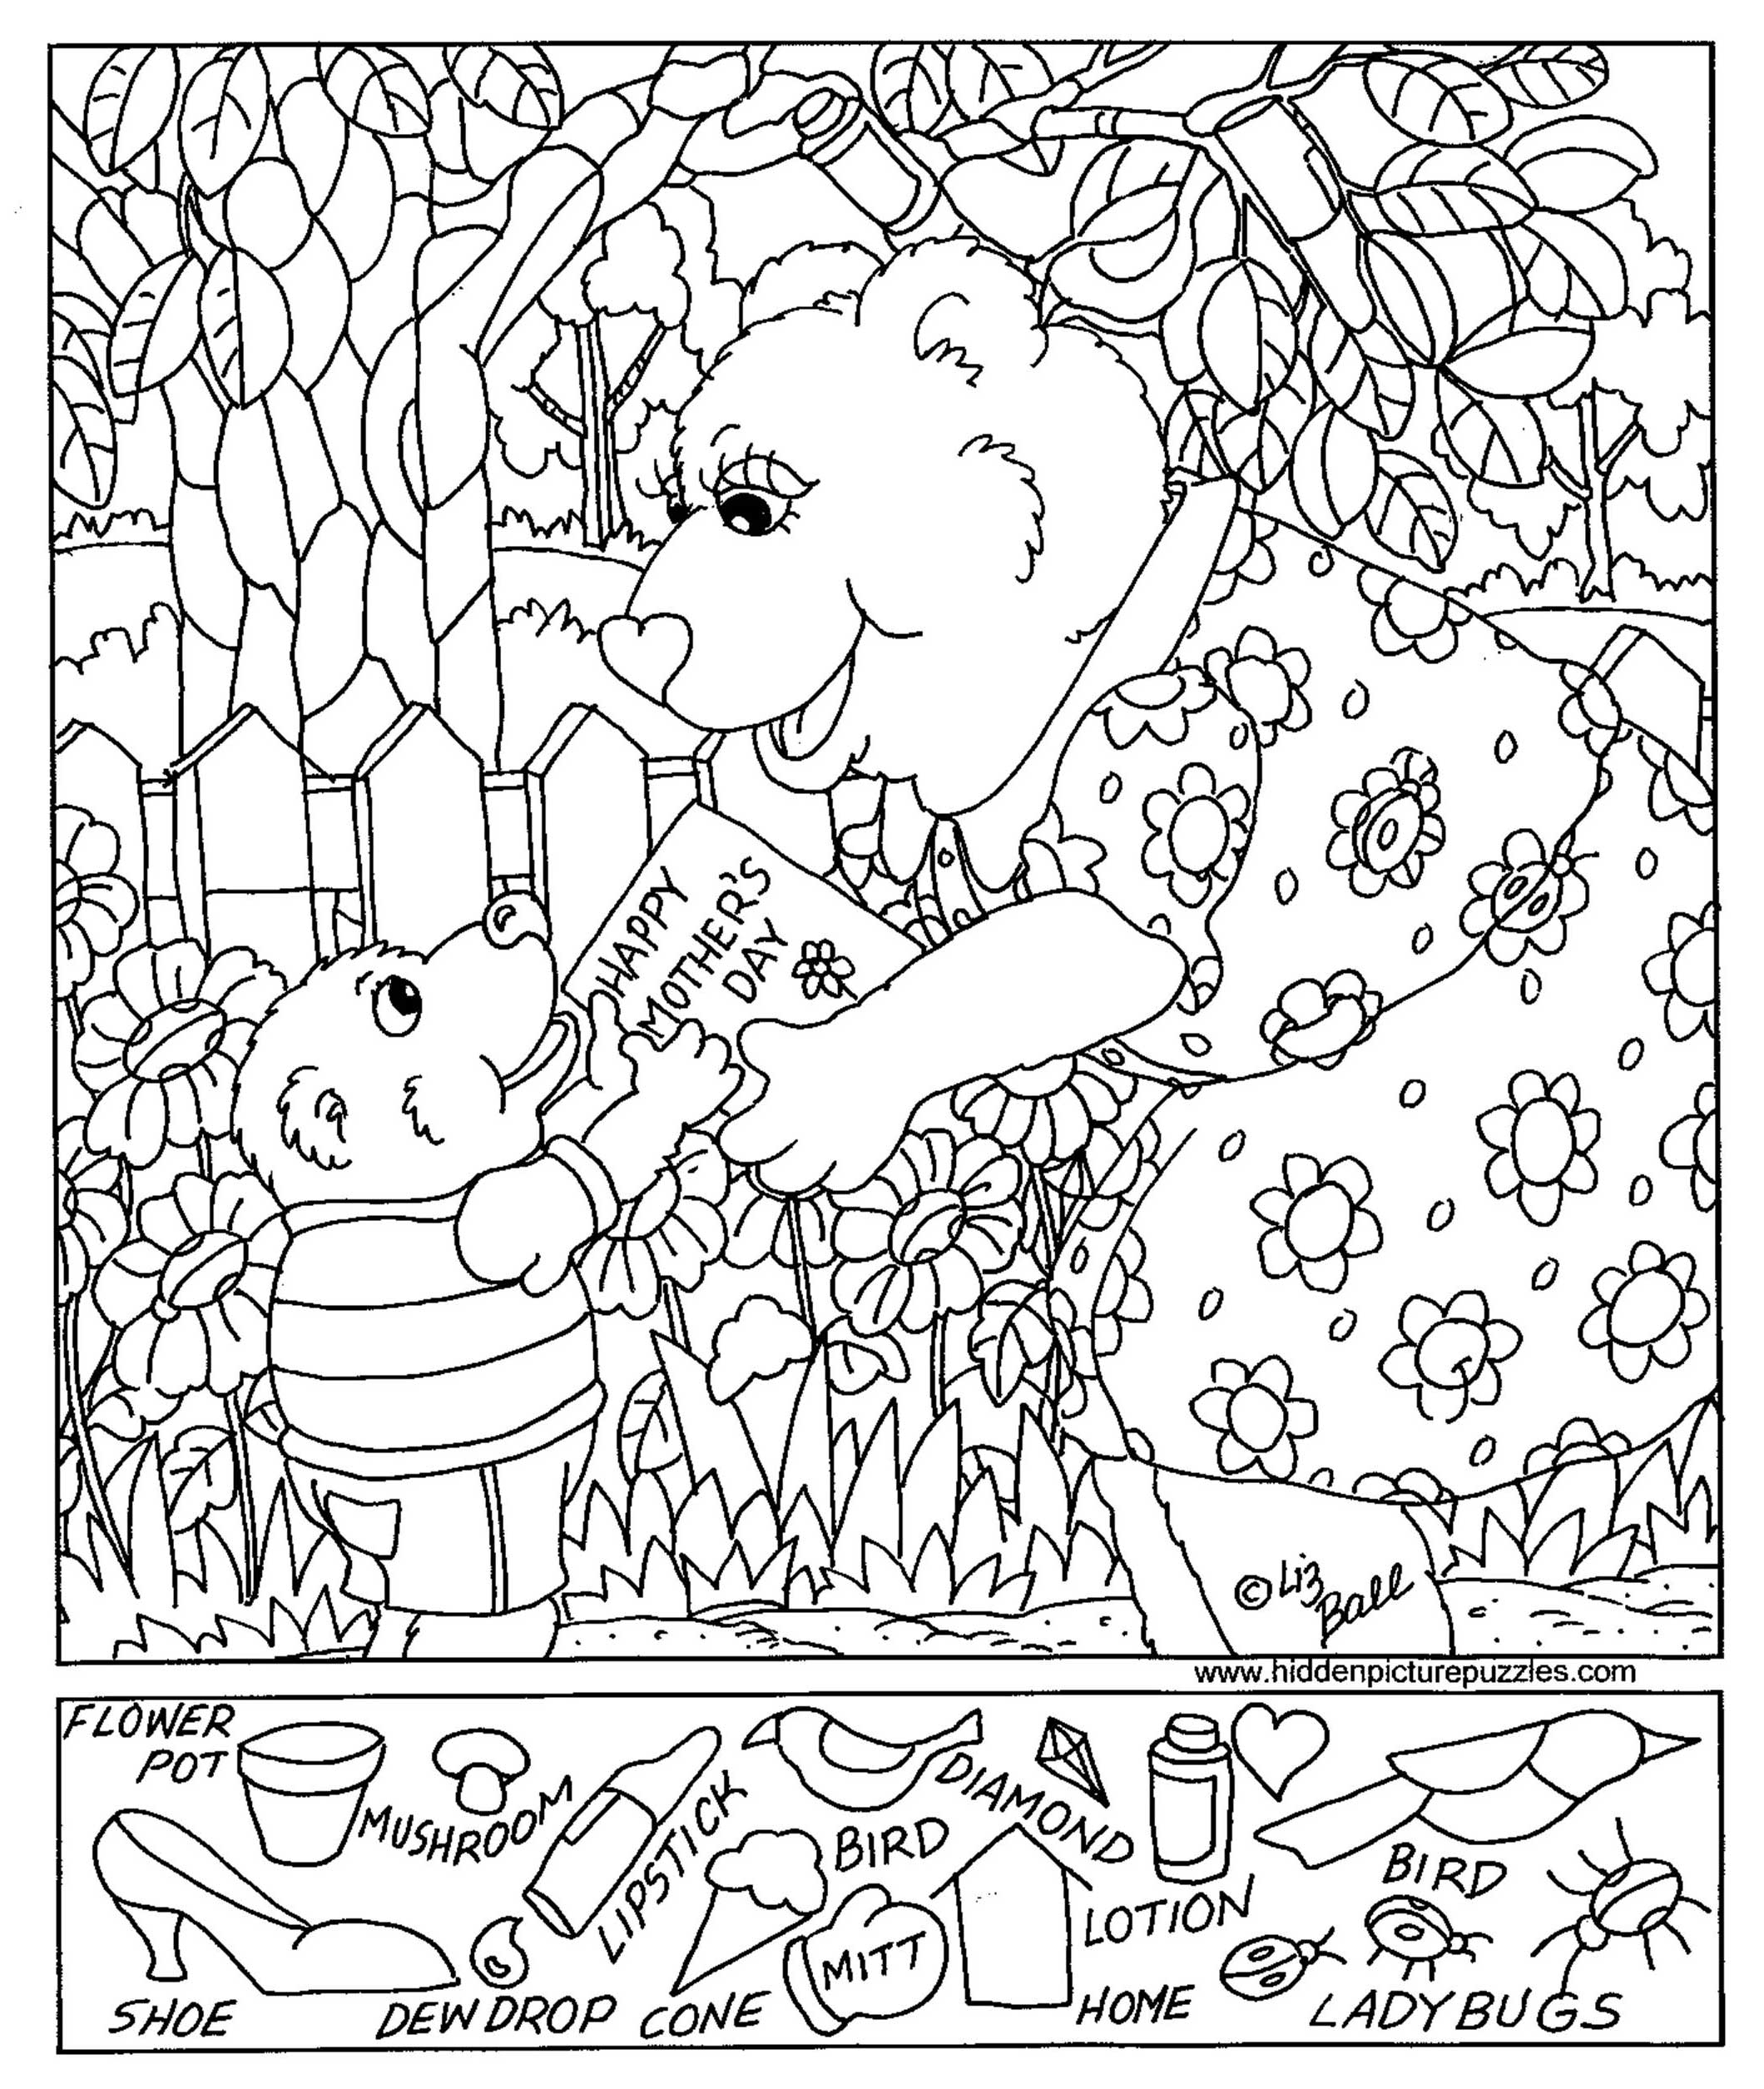 Free Printable Hidden Pictures For Kids At Allkidsnetwork - Free Printable Hidden Pictures